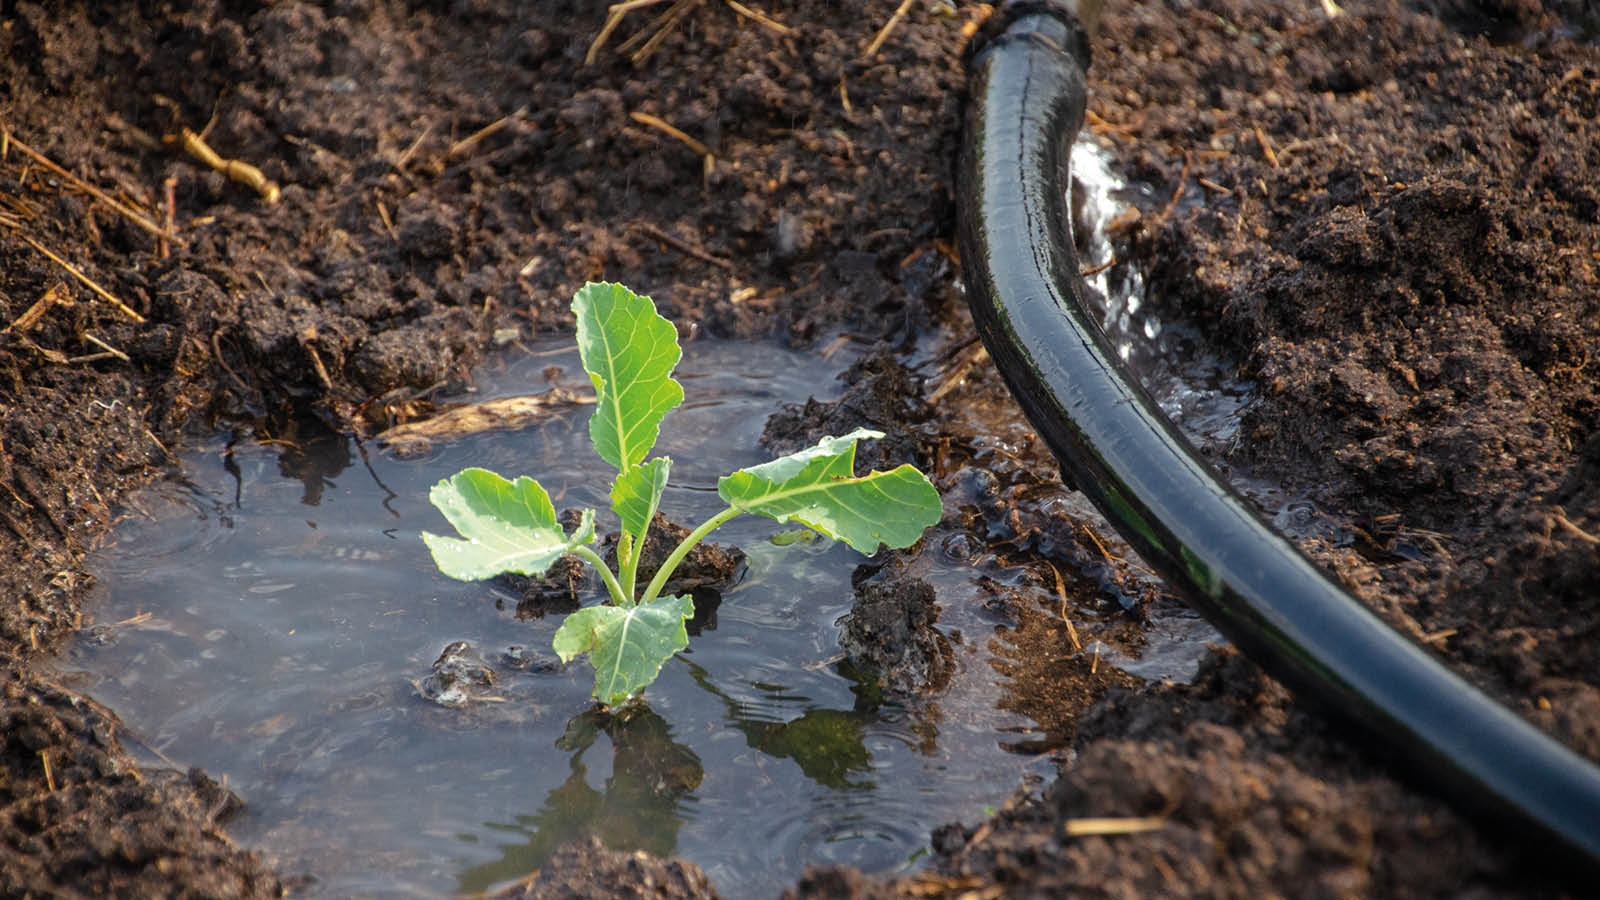 A small plant in a puddle of water leaking from a hosepipe